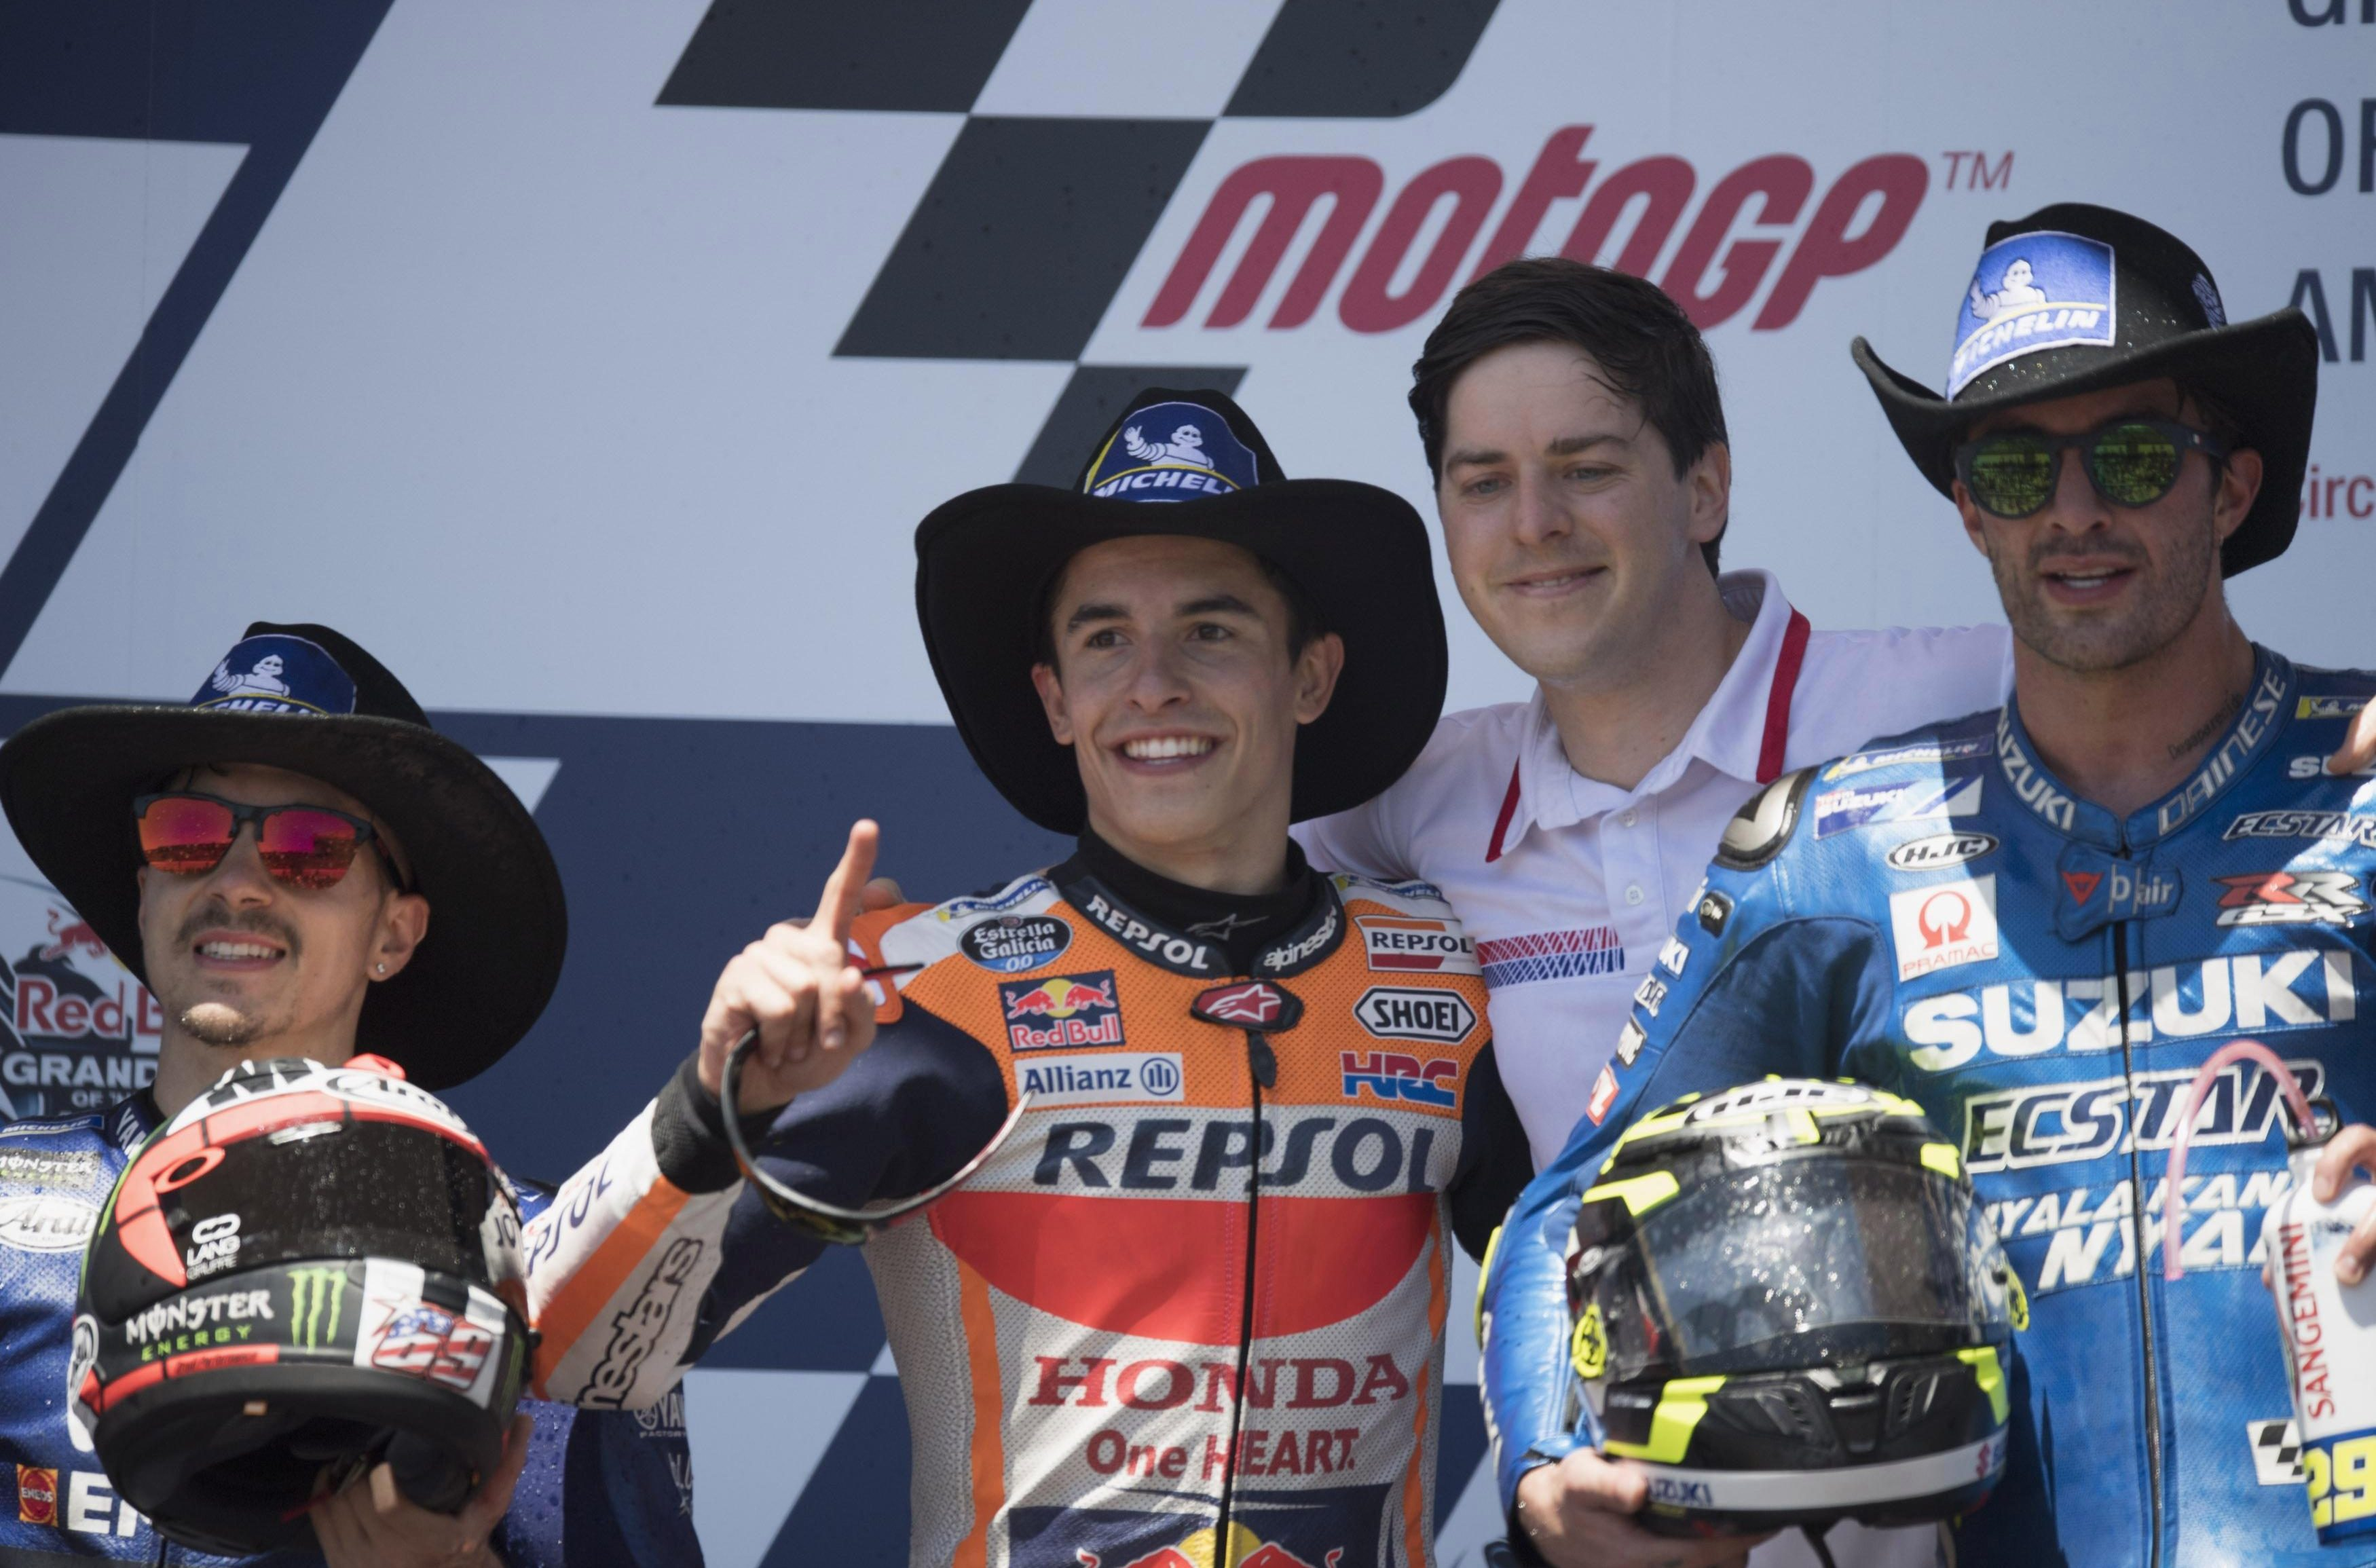 Marc Marquez (centre) was victorious at the Grand Prix of the Americas